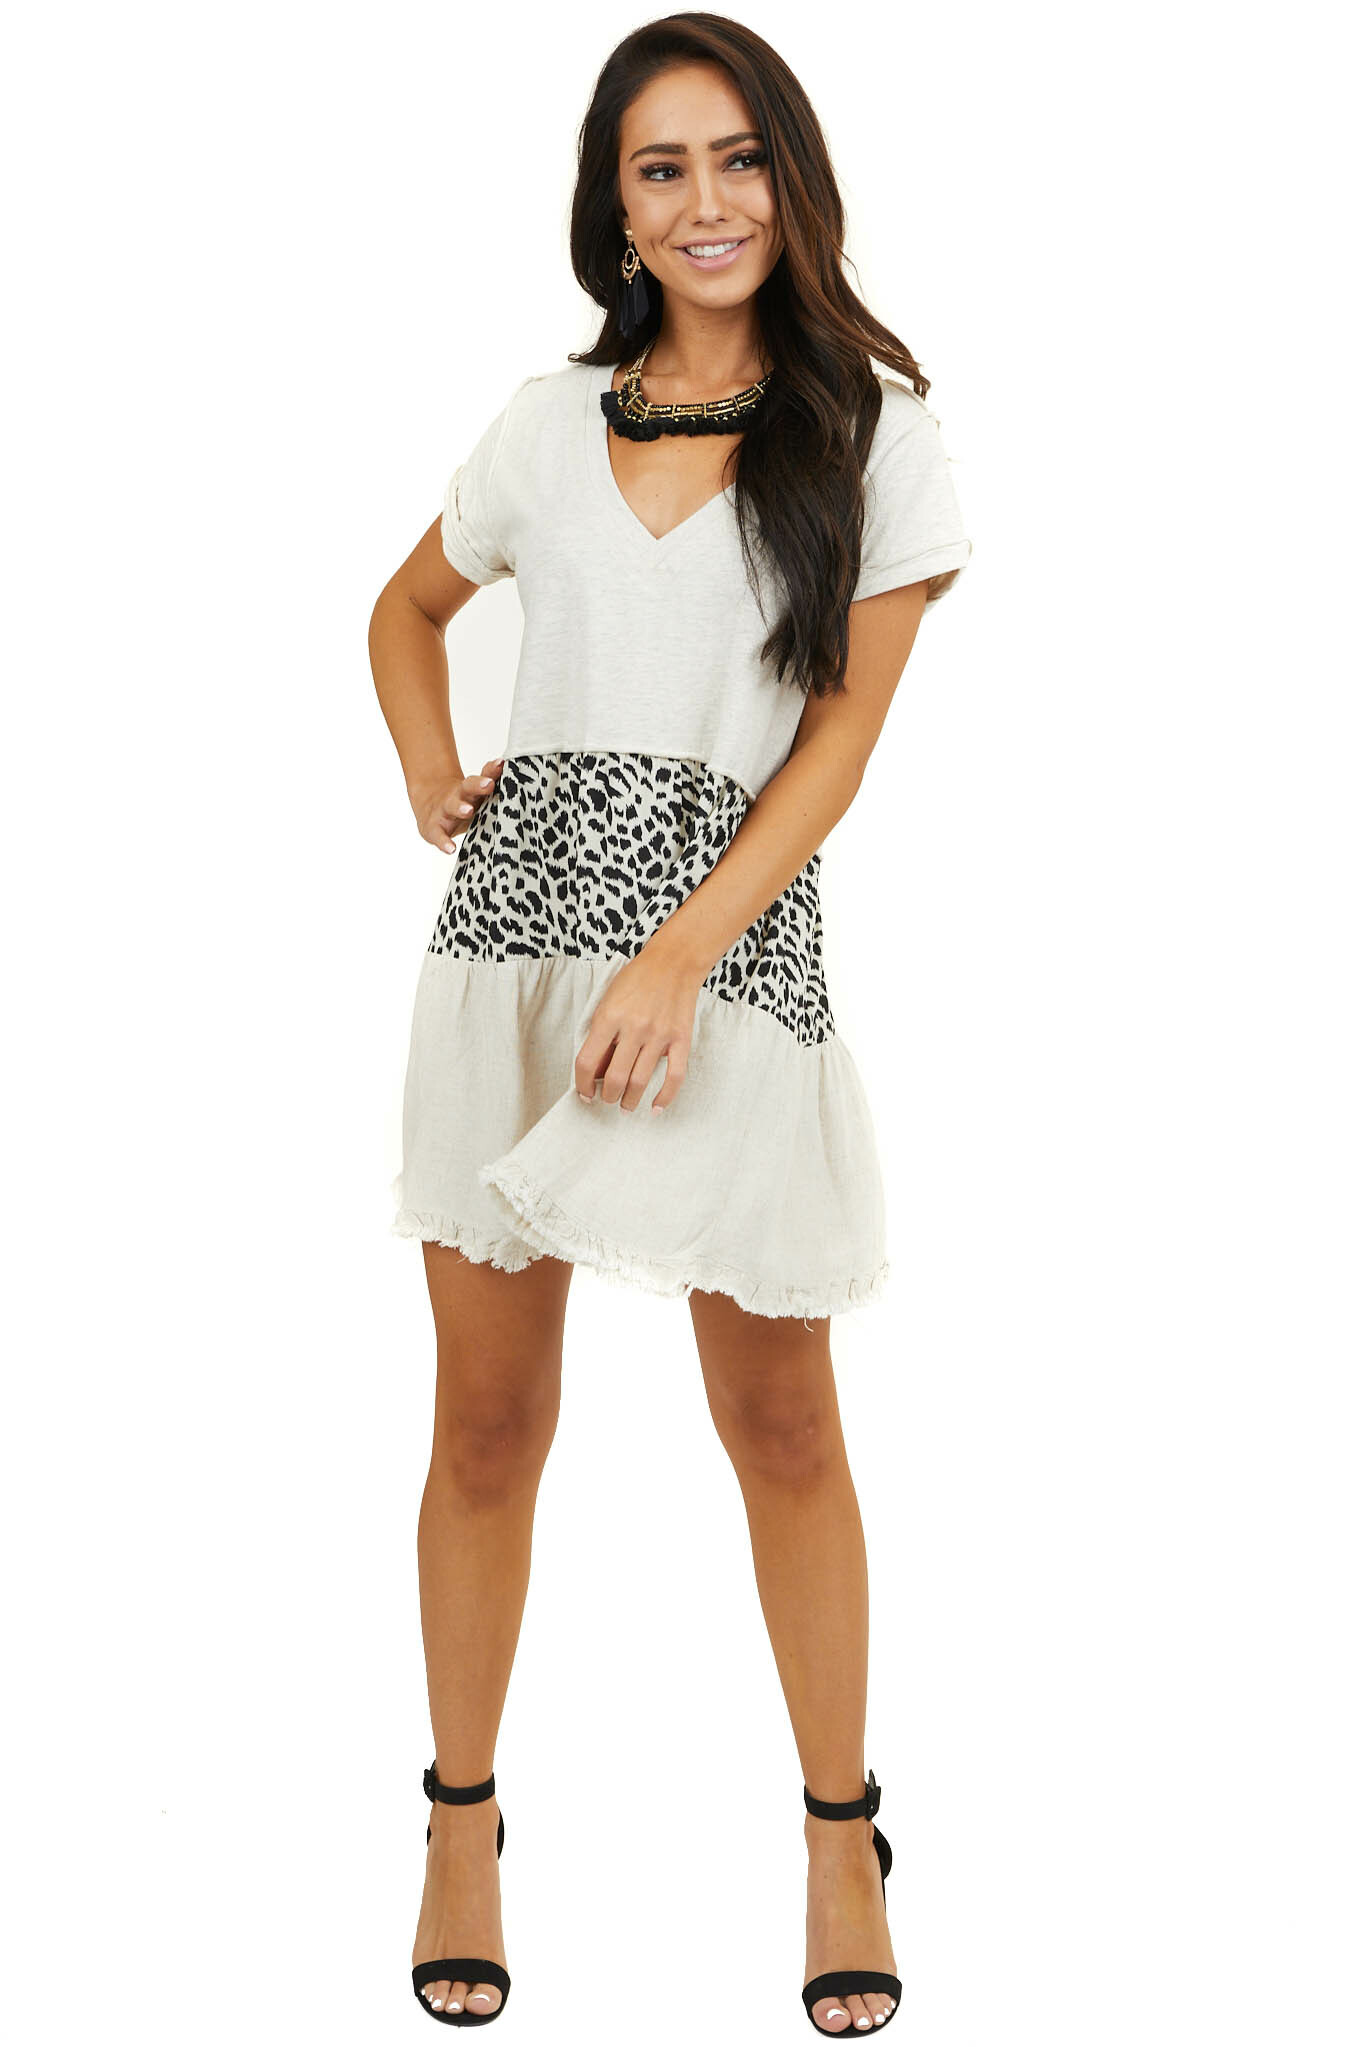 Oatmeal Colorblock V Neck Dress with Short Sleeves